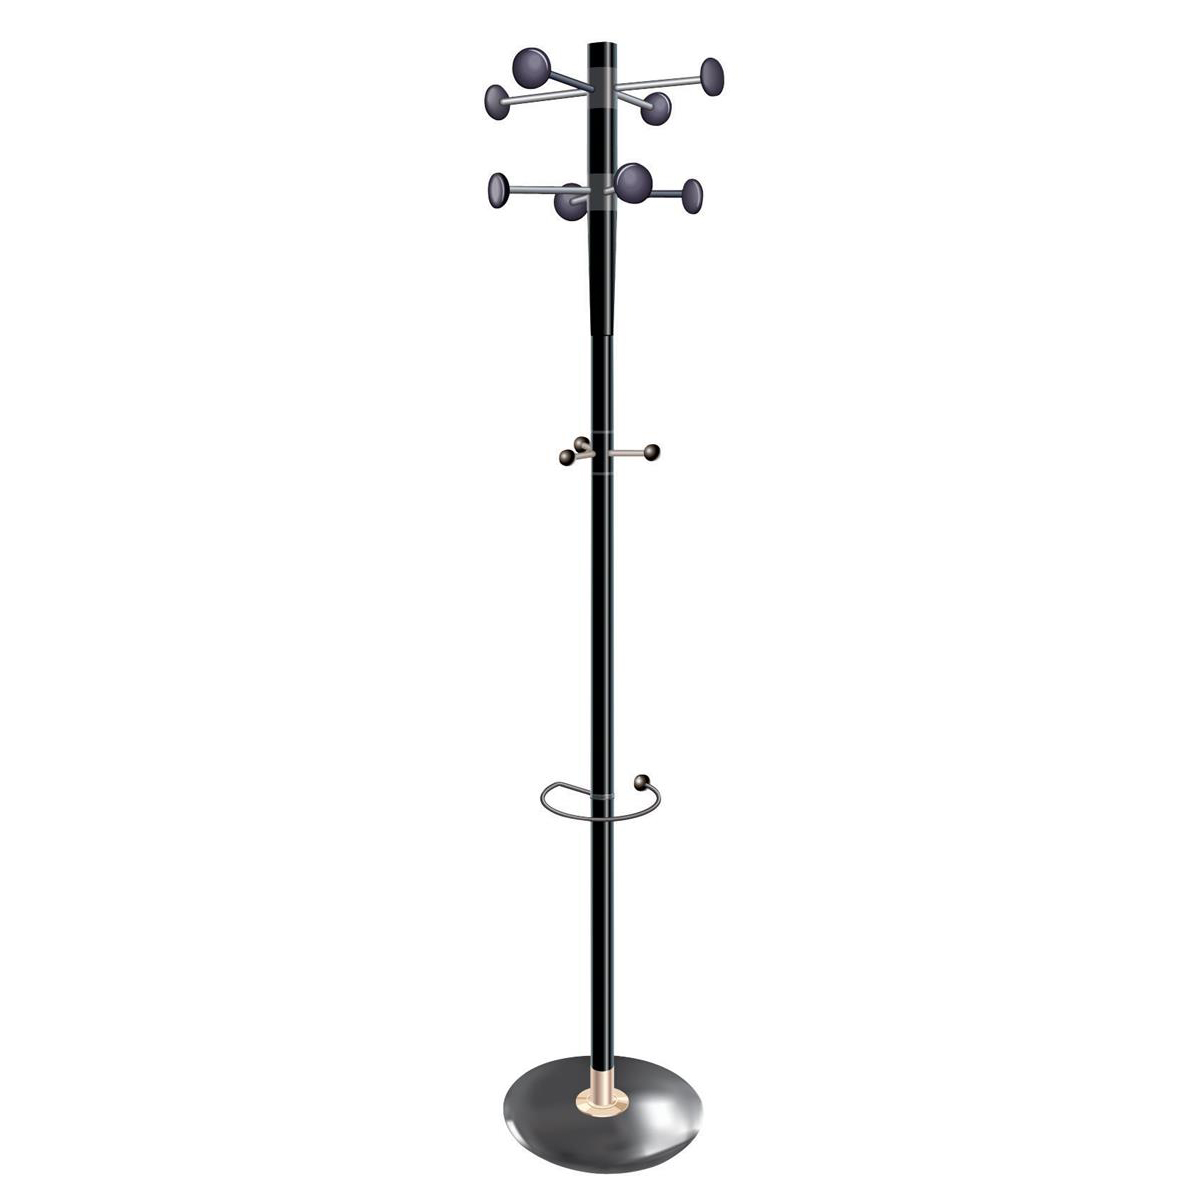 Business Decorative Coat Stand Solid Head Steel Post Umbrella Stand Double Pegs Black